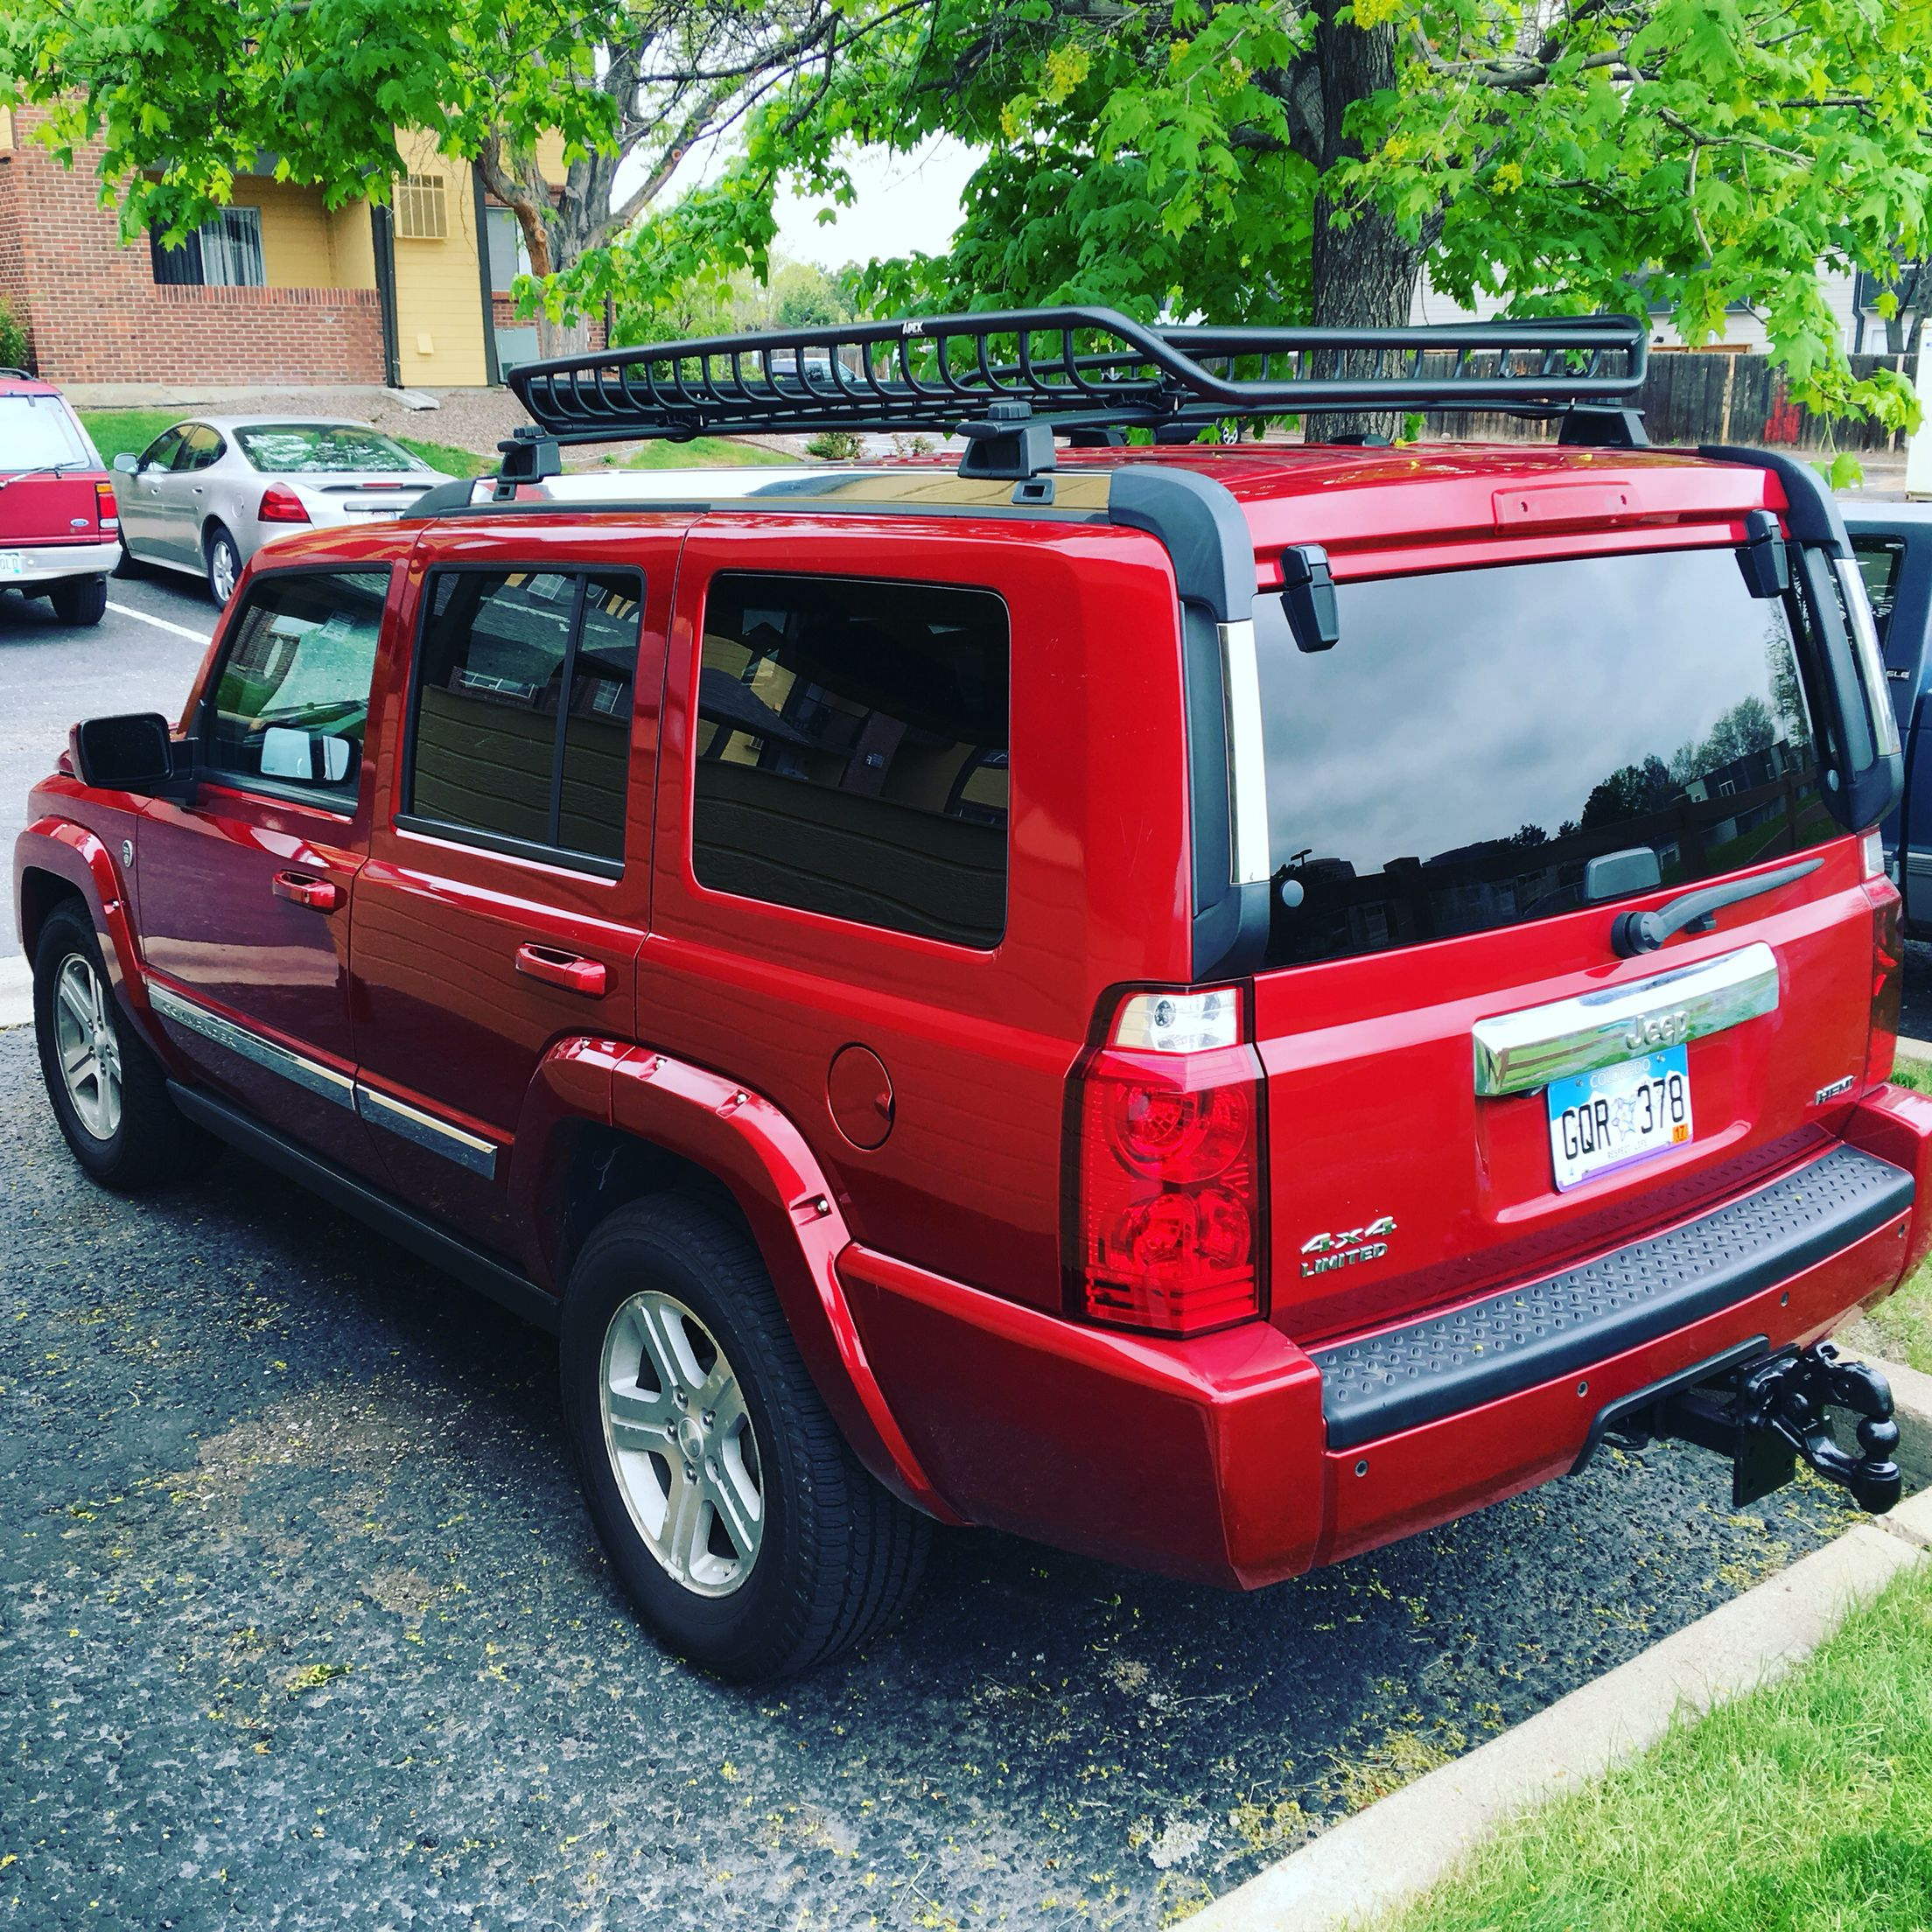 10 000 Lbs Tow Hitch 2010 Jeep Commander Limited Hemi 5 7 Liter